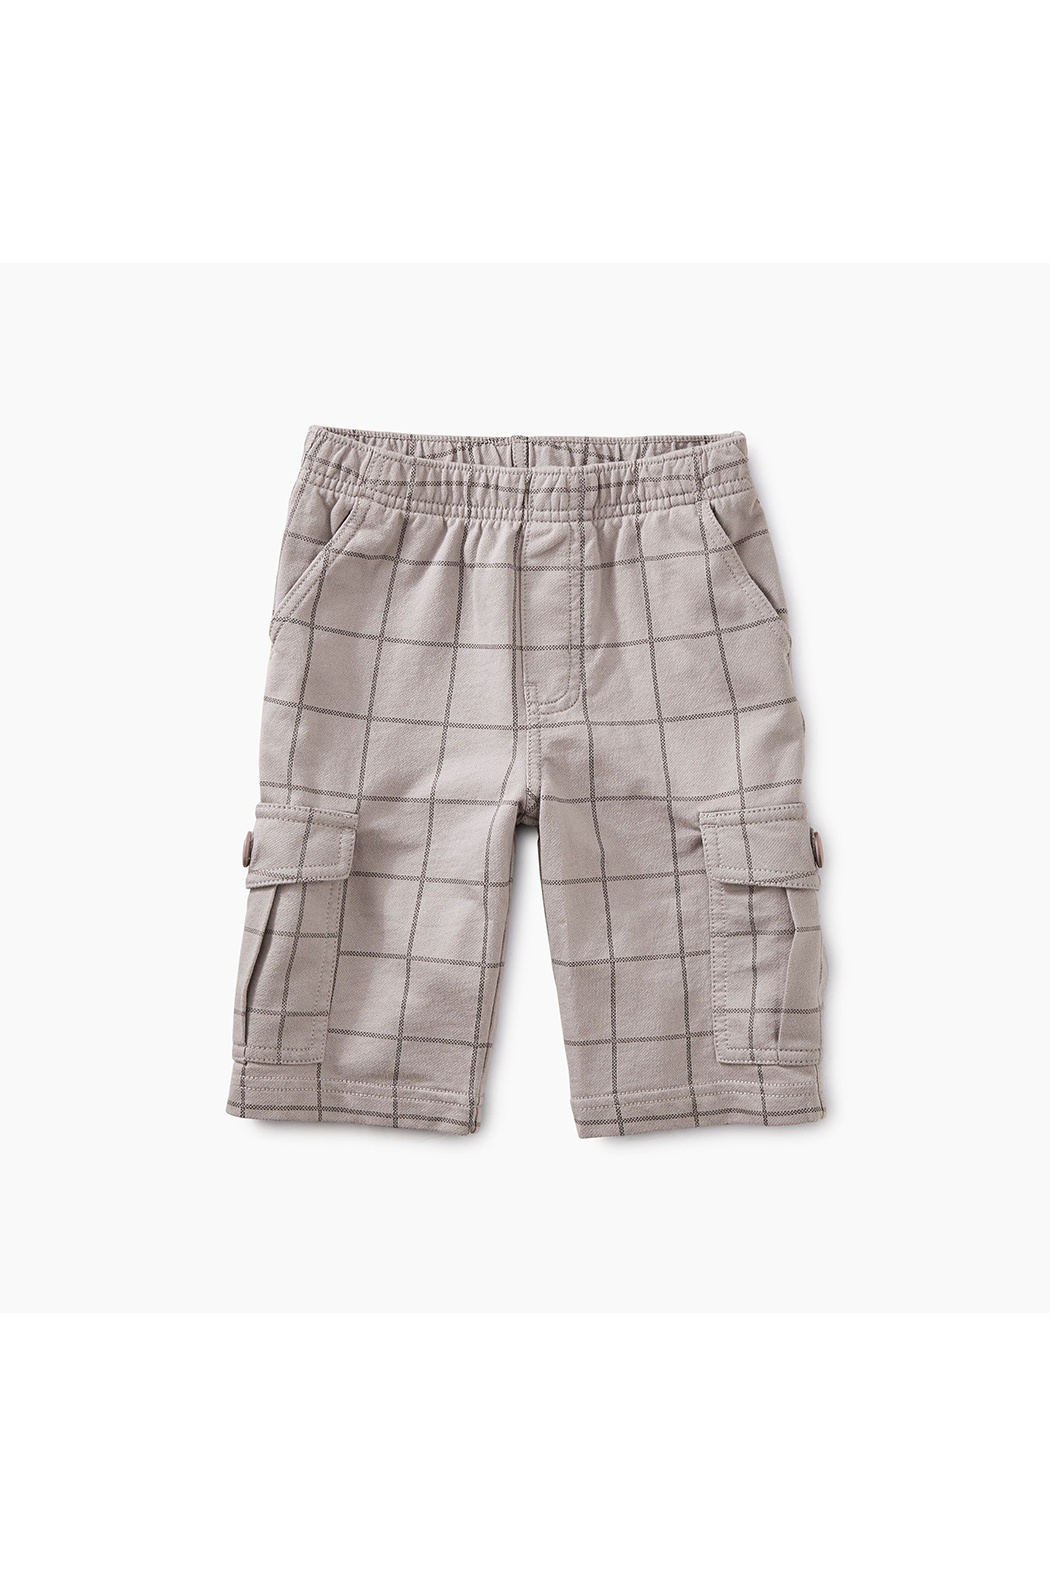 Tea Collection Windowpane Cargo Shorts - Main Image